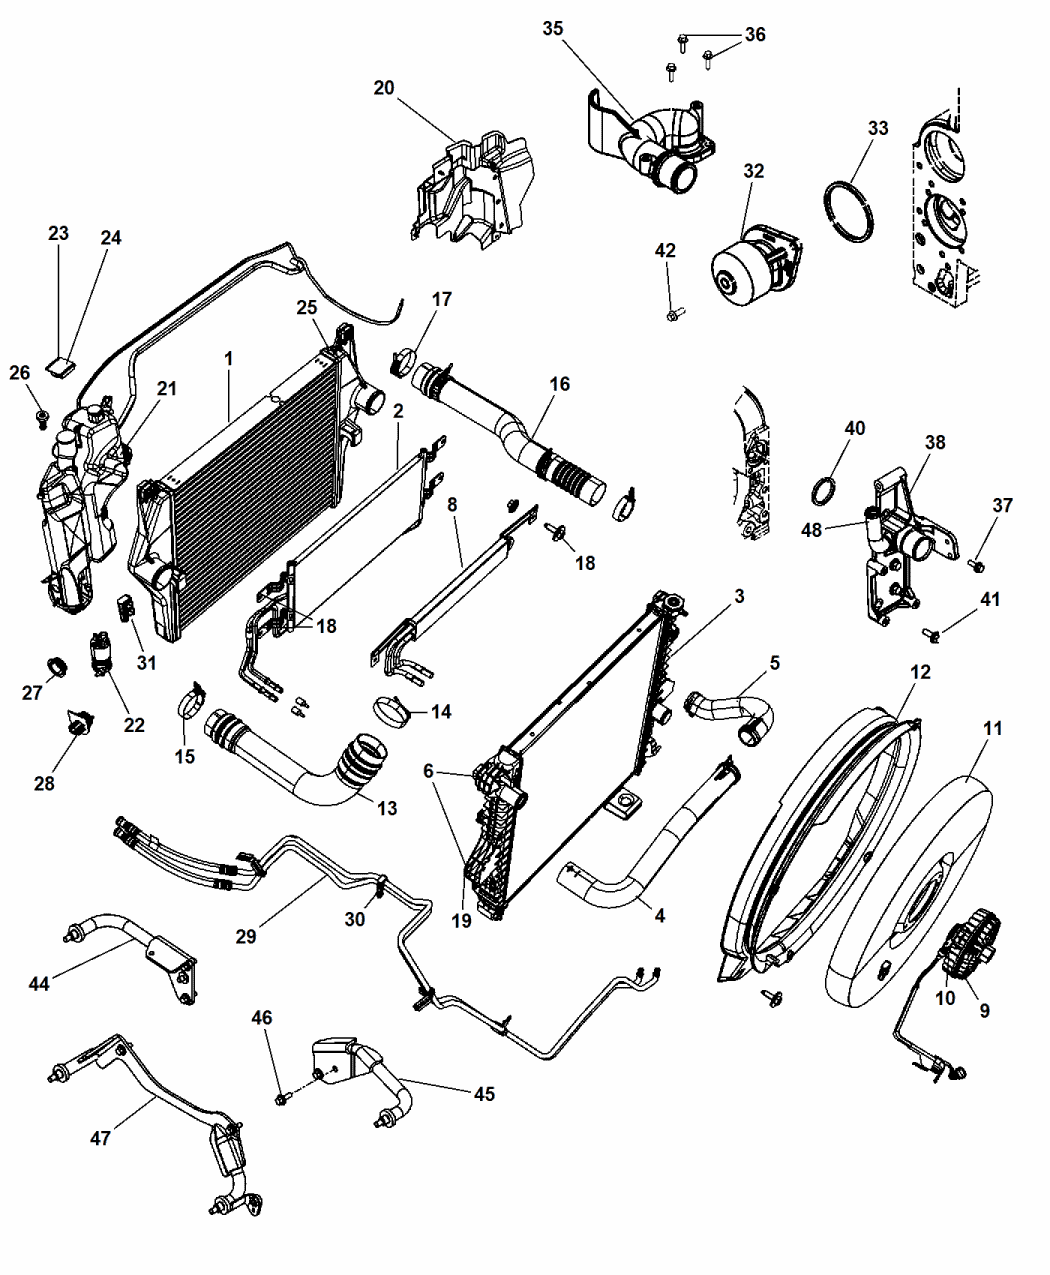 [DD_2468] 2000 Dodge Grand Caravan Cooling System Diagram